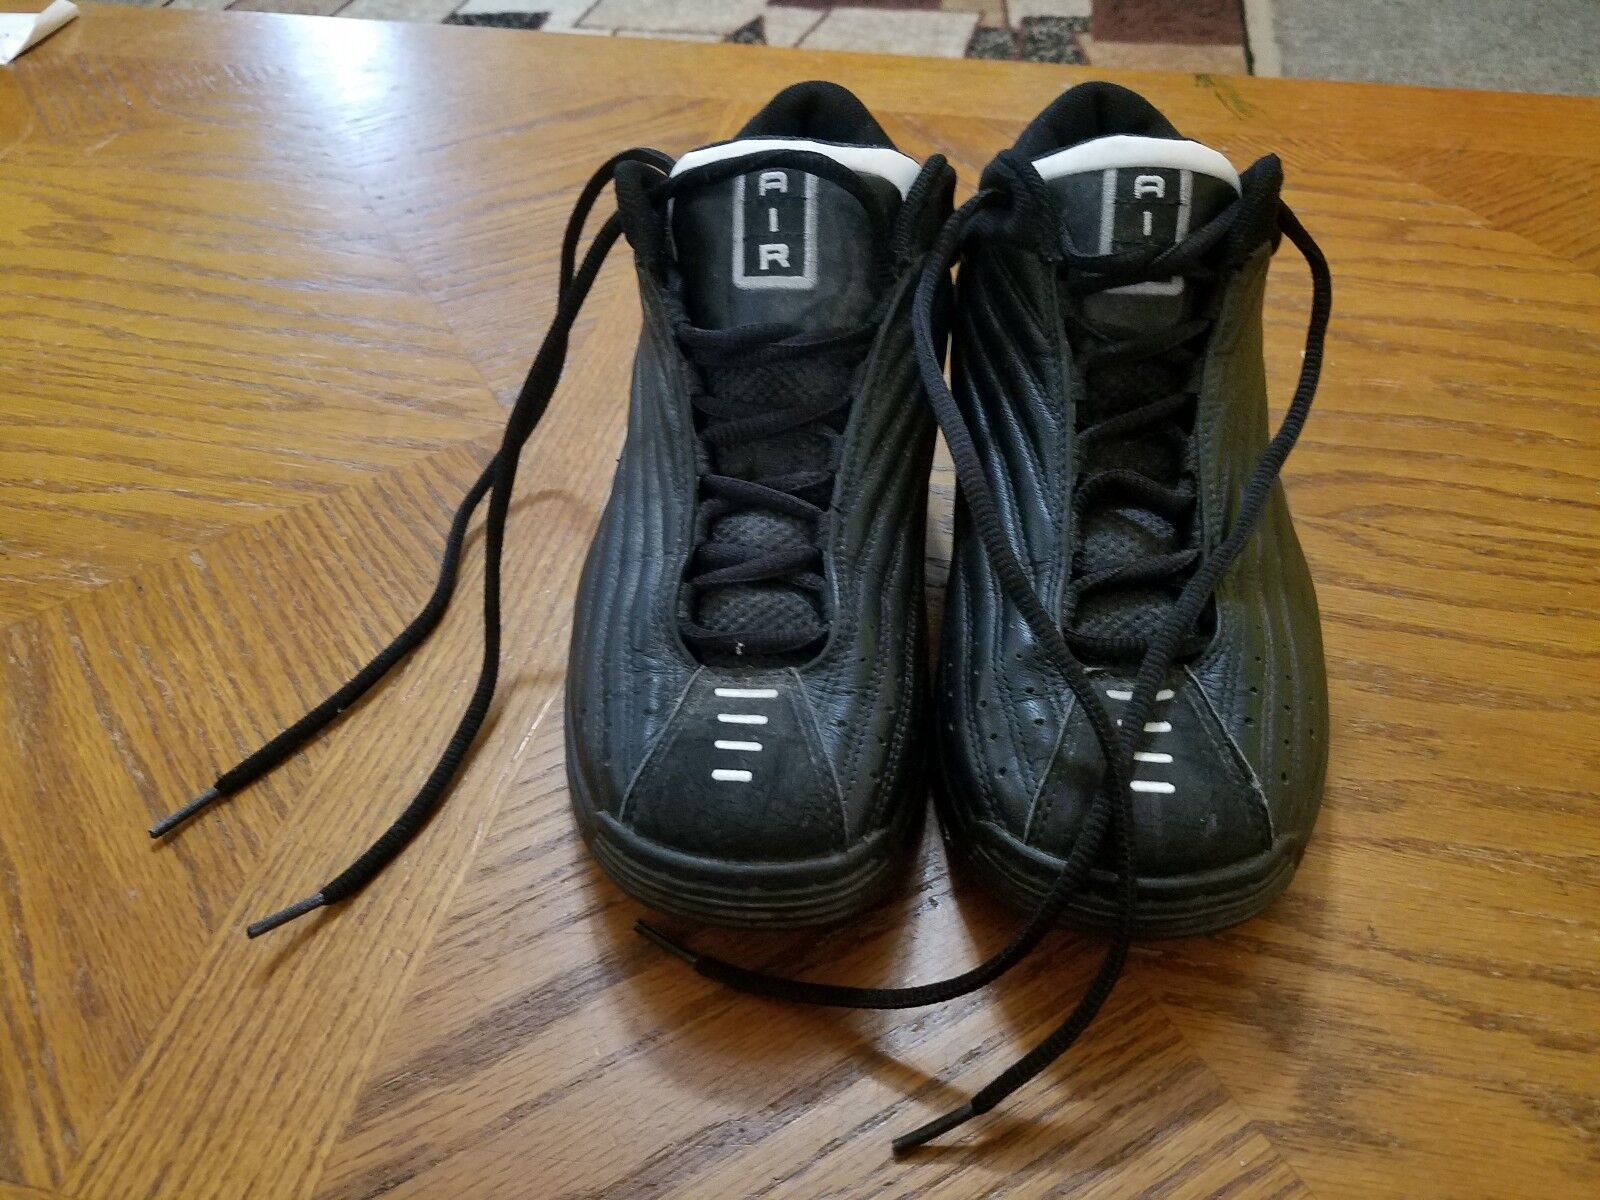 Nike 830251 Air Dura Mid Basketball Shoes Black Sneakers Men's Size 8 2001 VTG